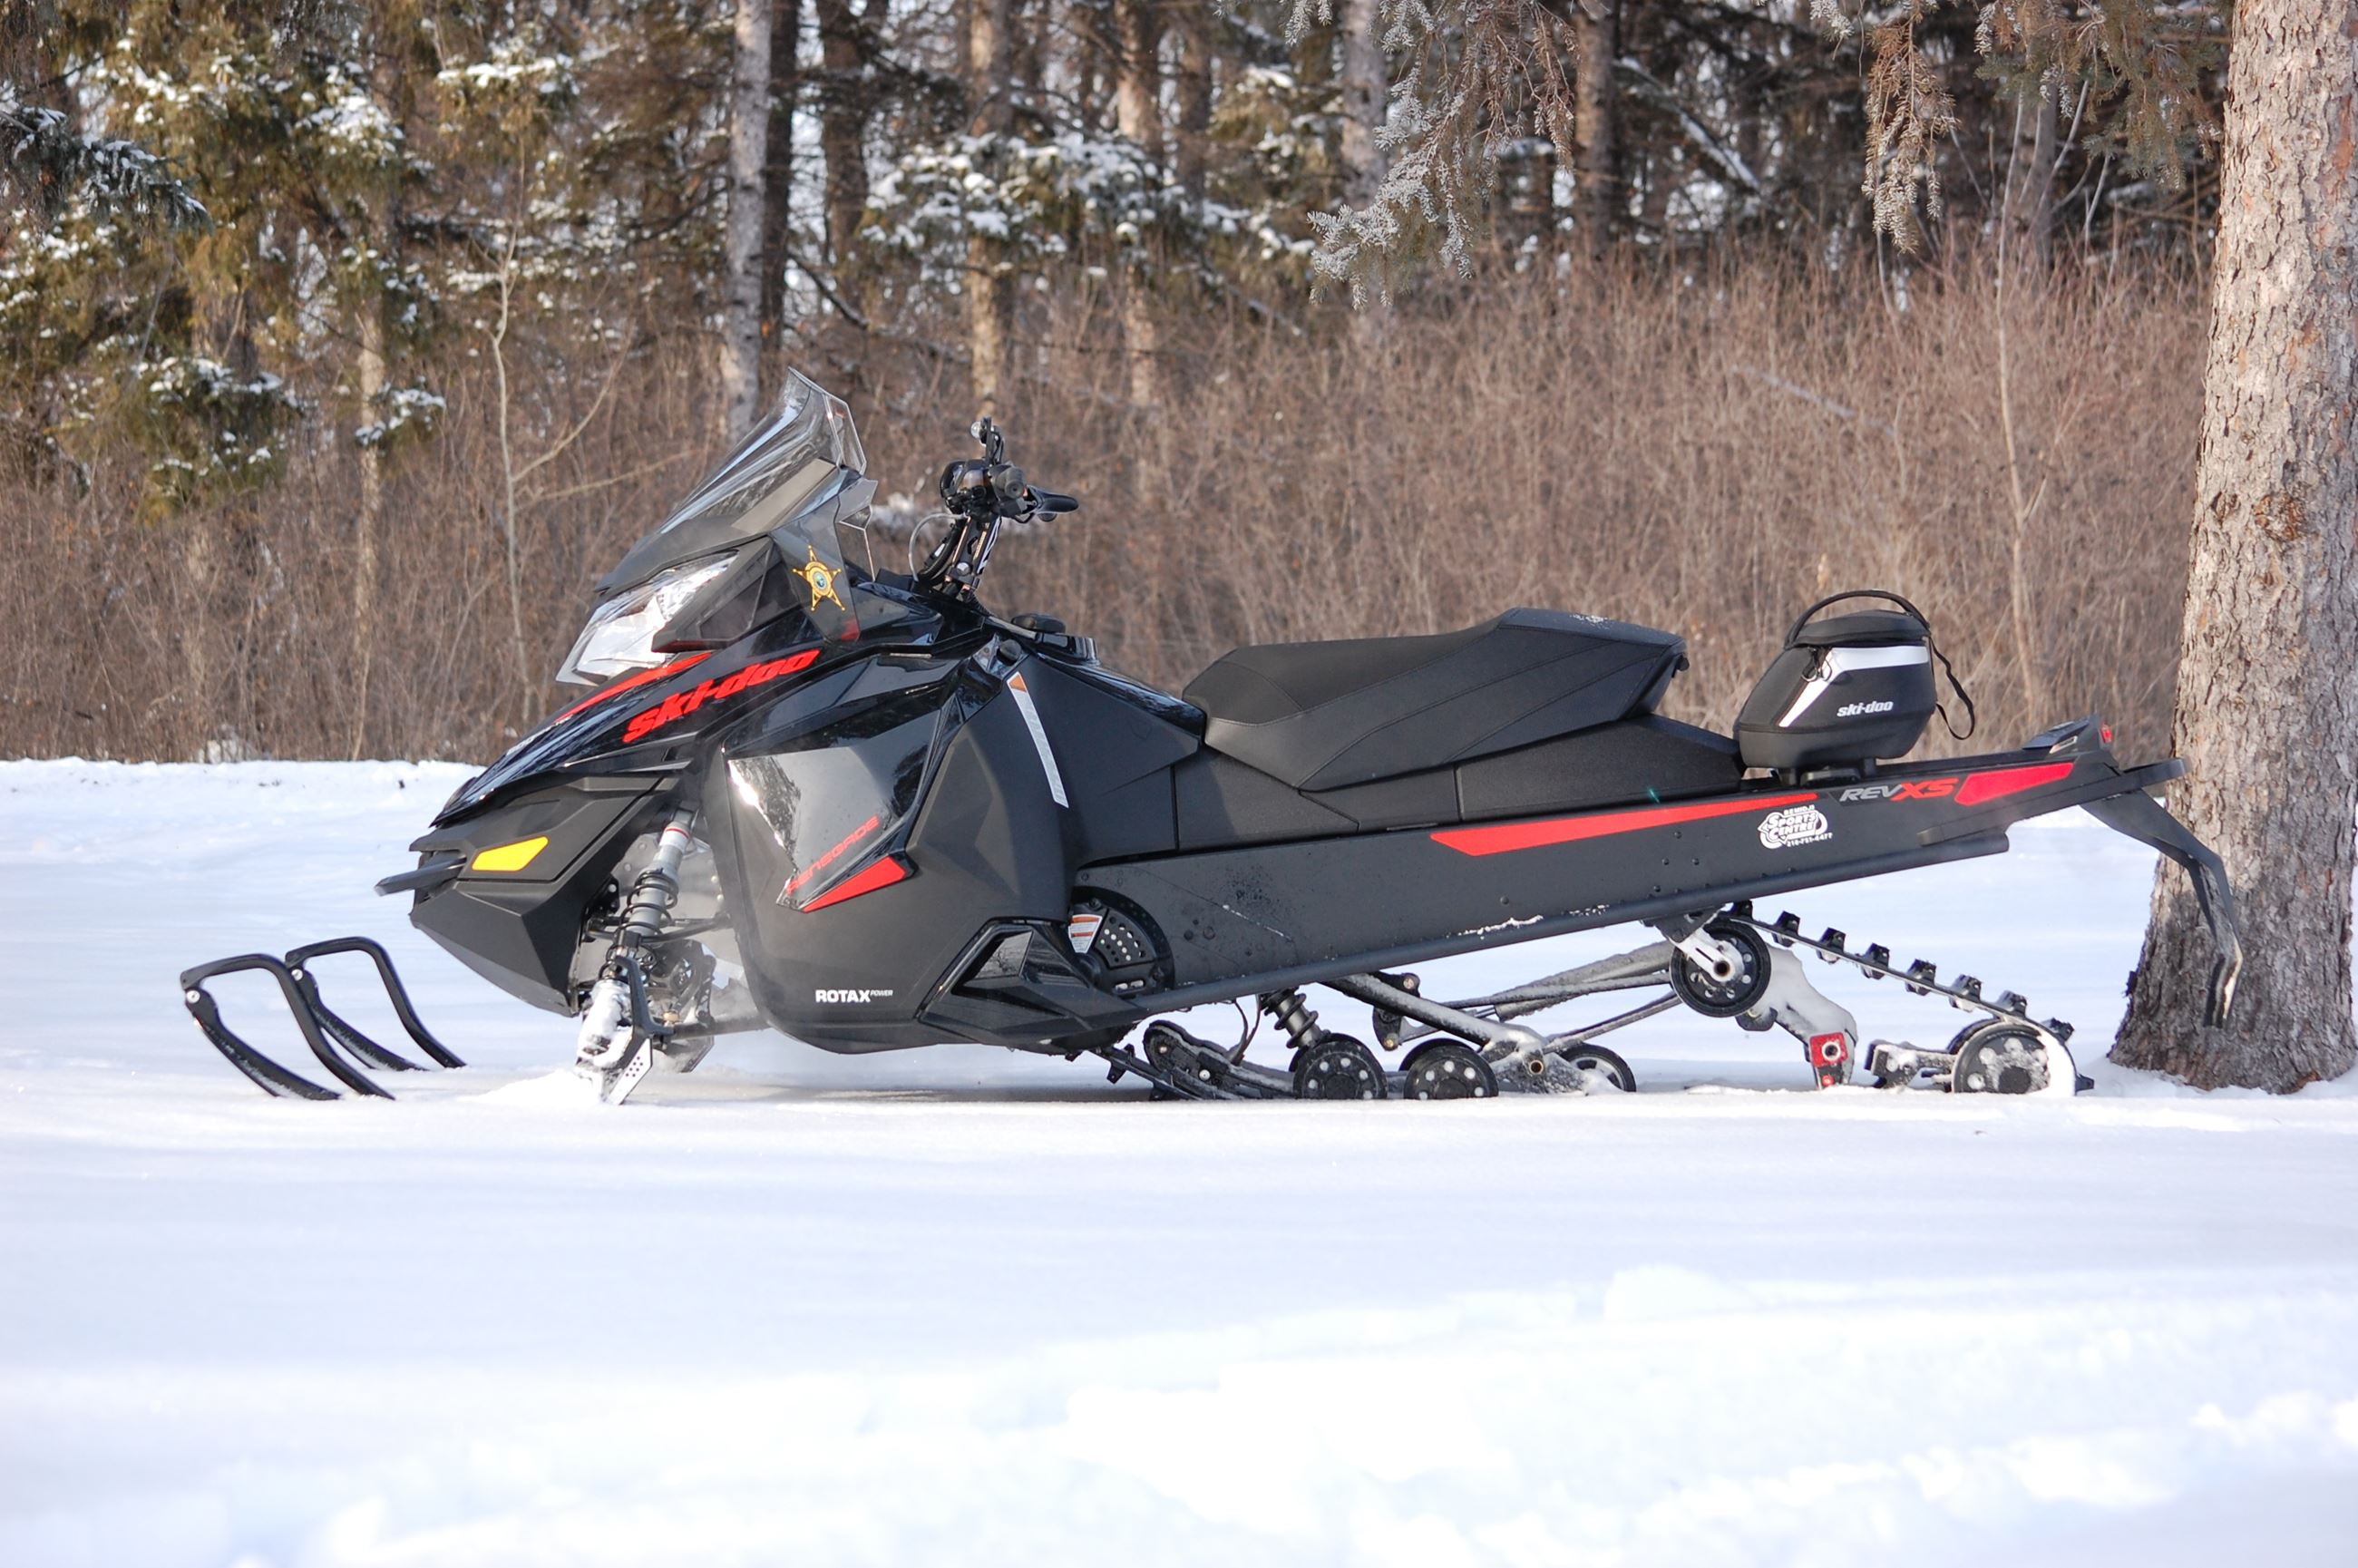 A Black Snowmobile on the Snow